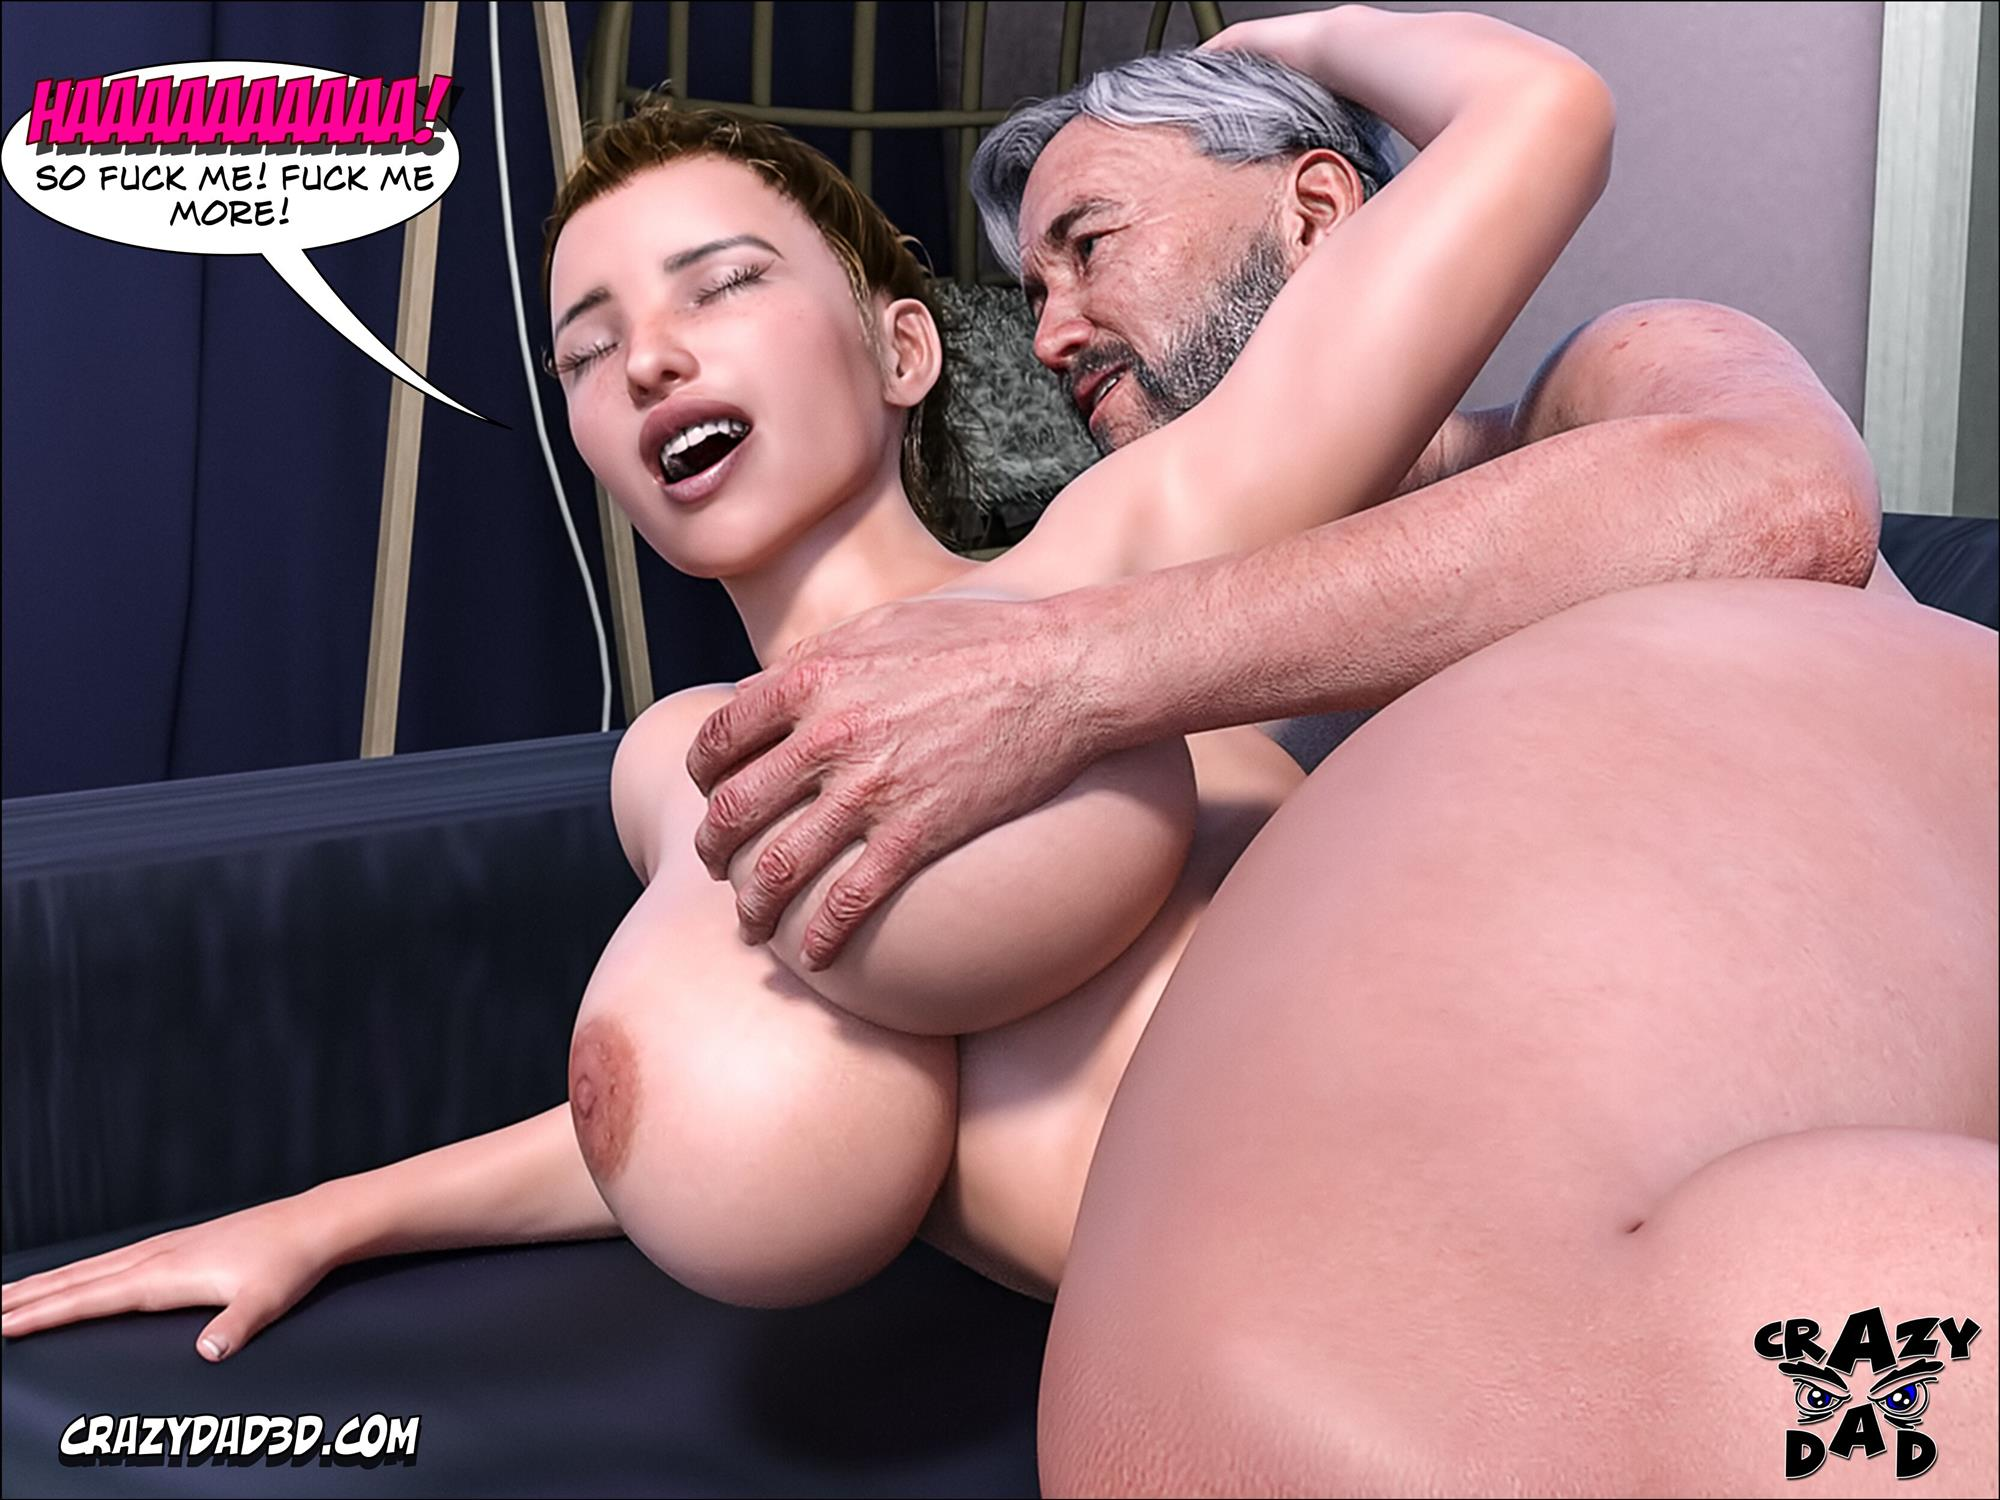 Father-in-Law at Home 10 [Crazy Dad 3D] - Foto 48